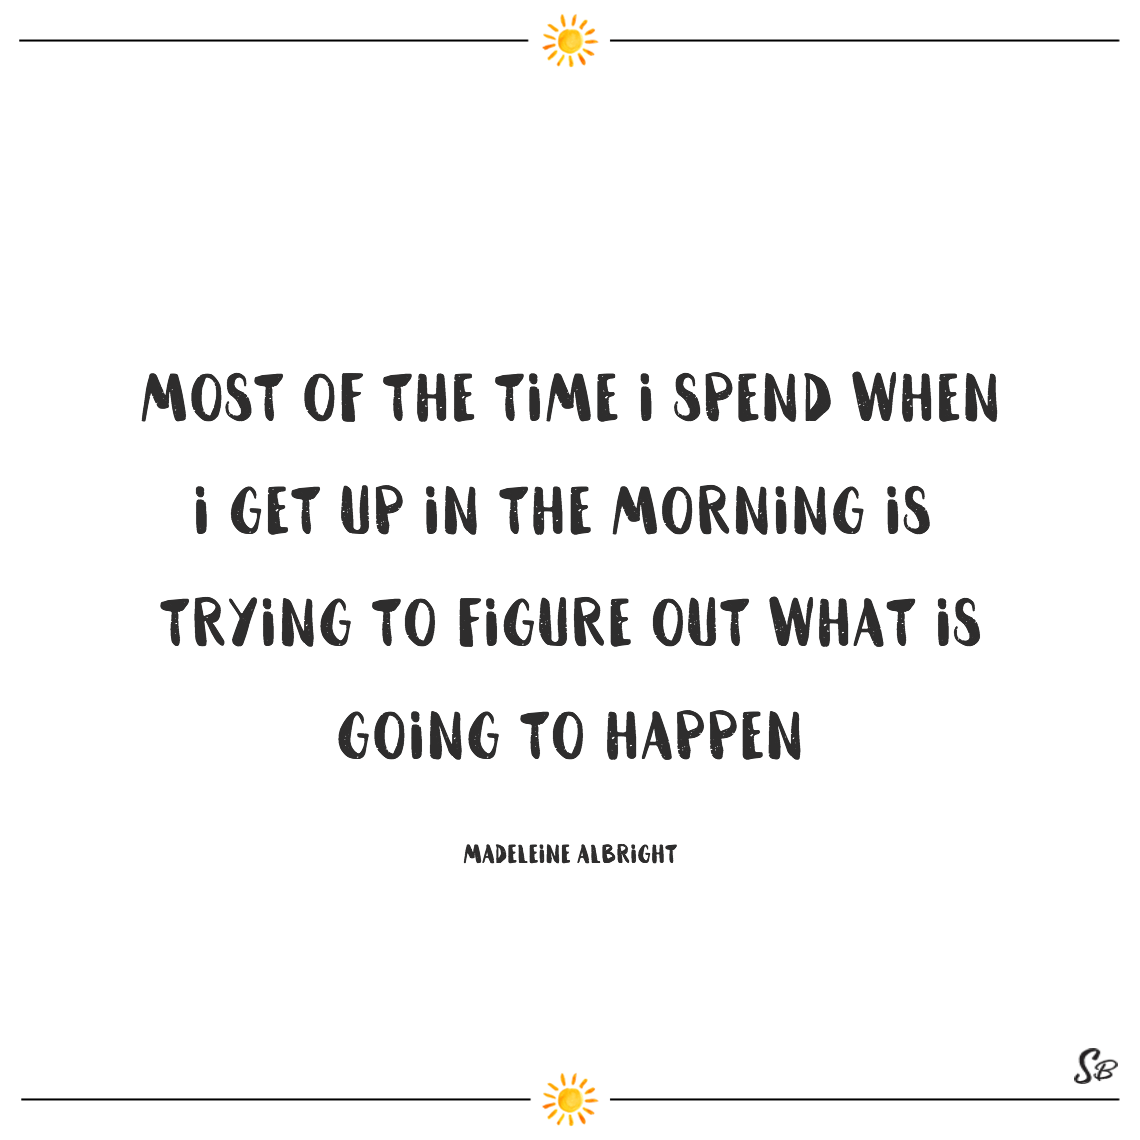 Most of the time i spend when i get up in the morning is trying to figure out what is going to happen madeleine albright